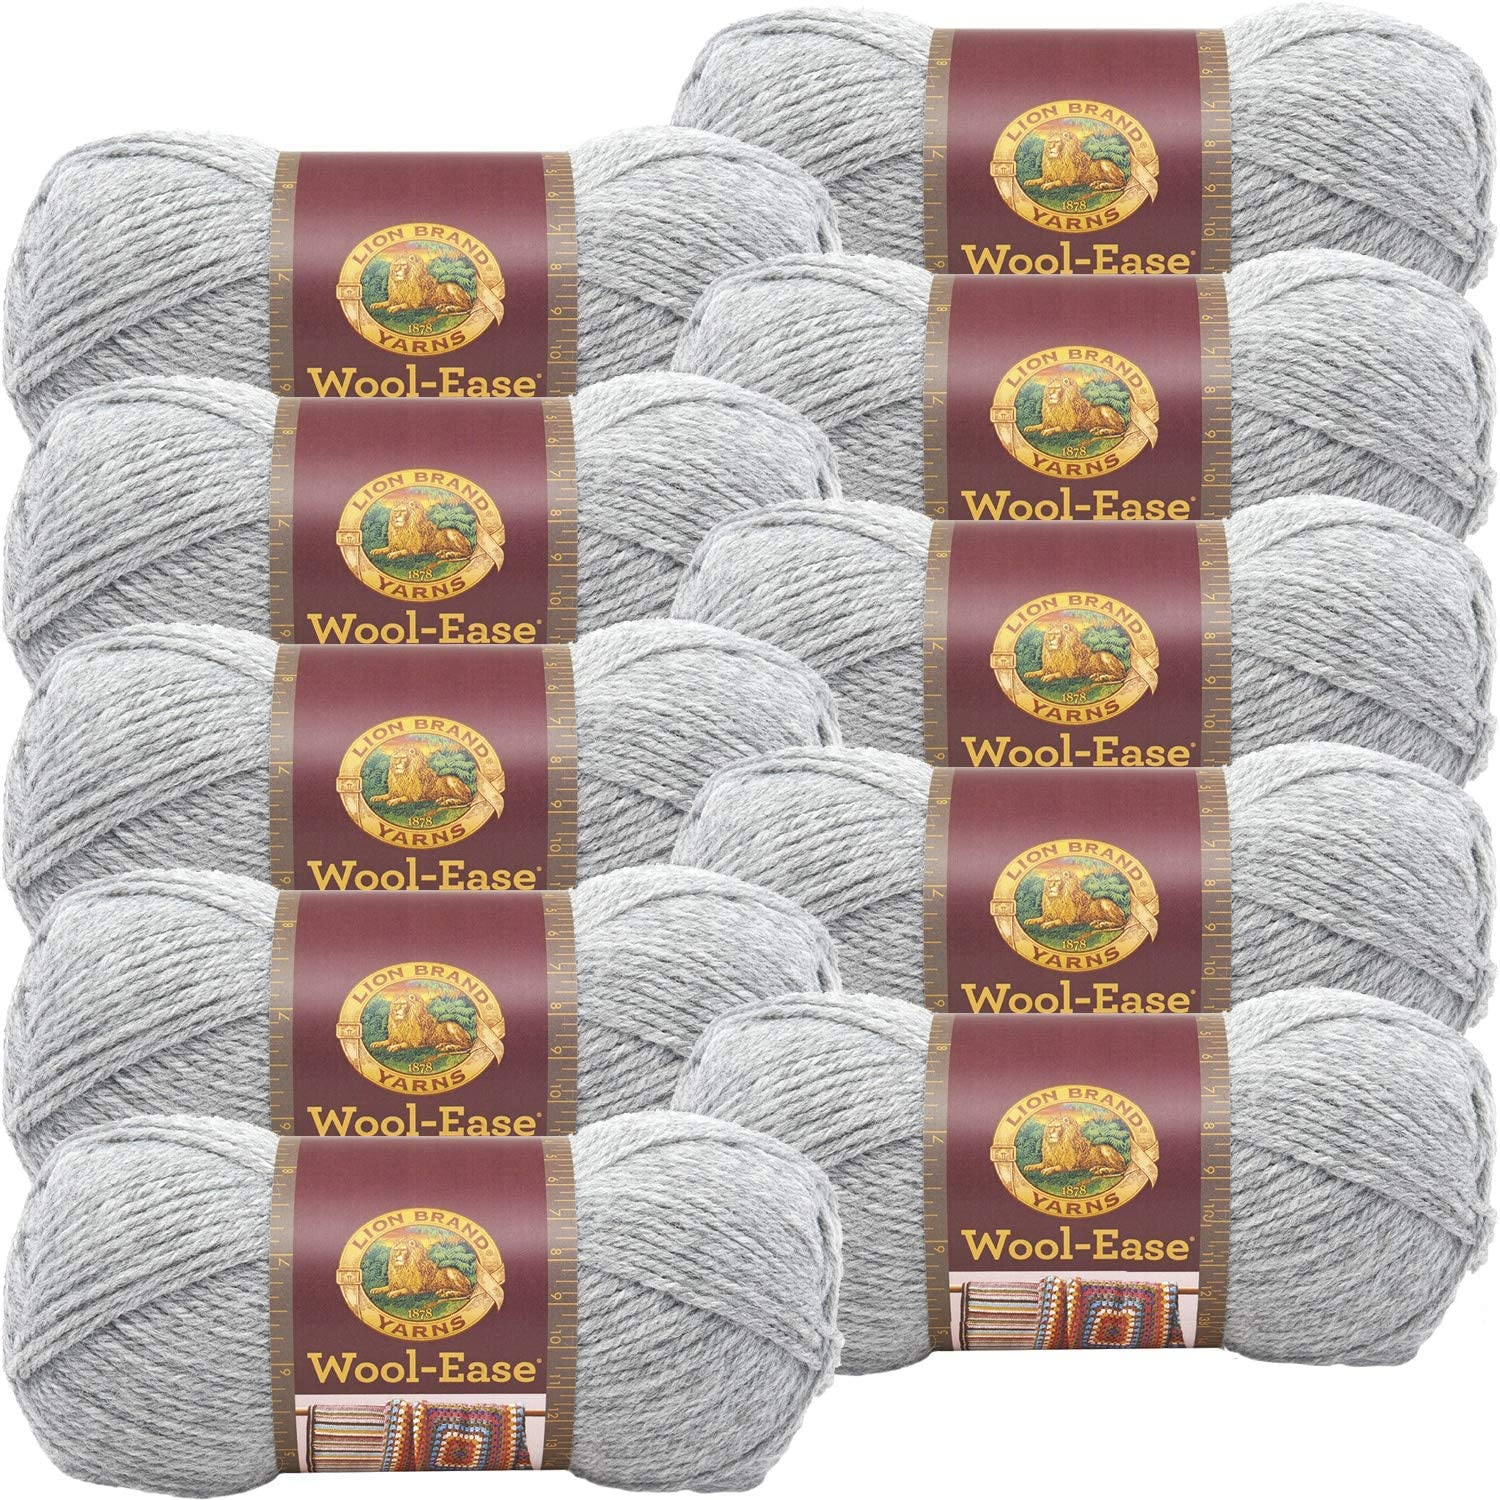 SEAL limited product Lion Brand Wool Ease Yarn-10 Pk-Grey 10 Heather Grey Pk Pac 100% quality warranty